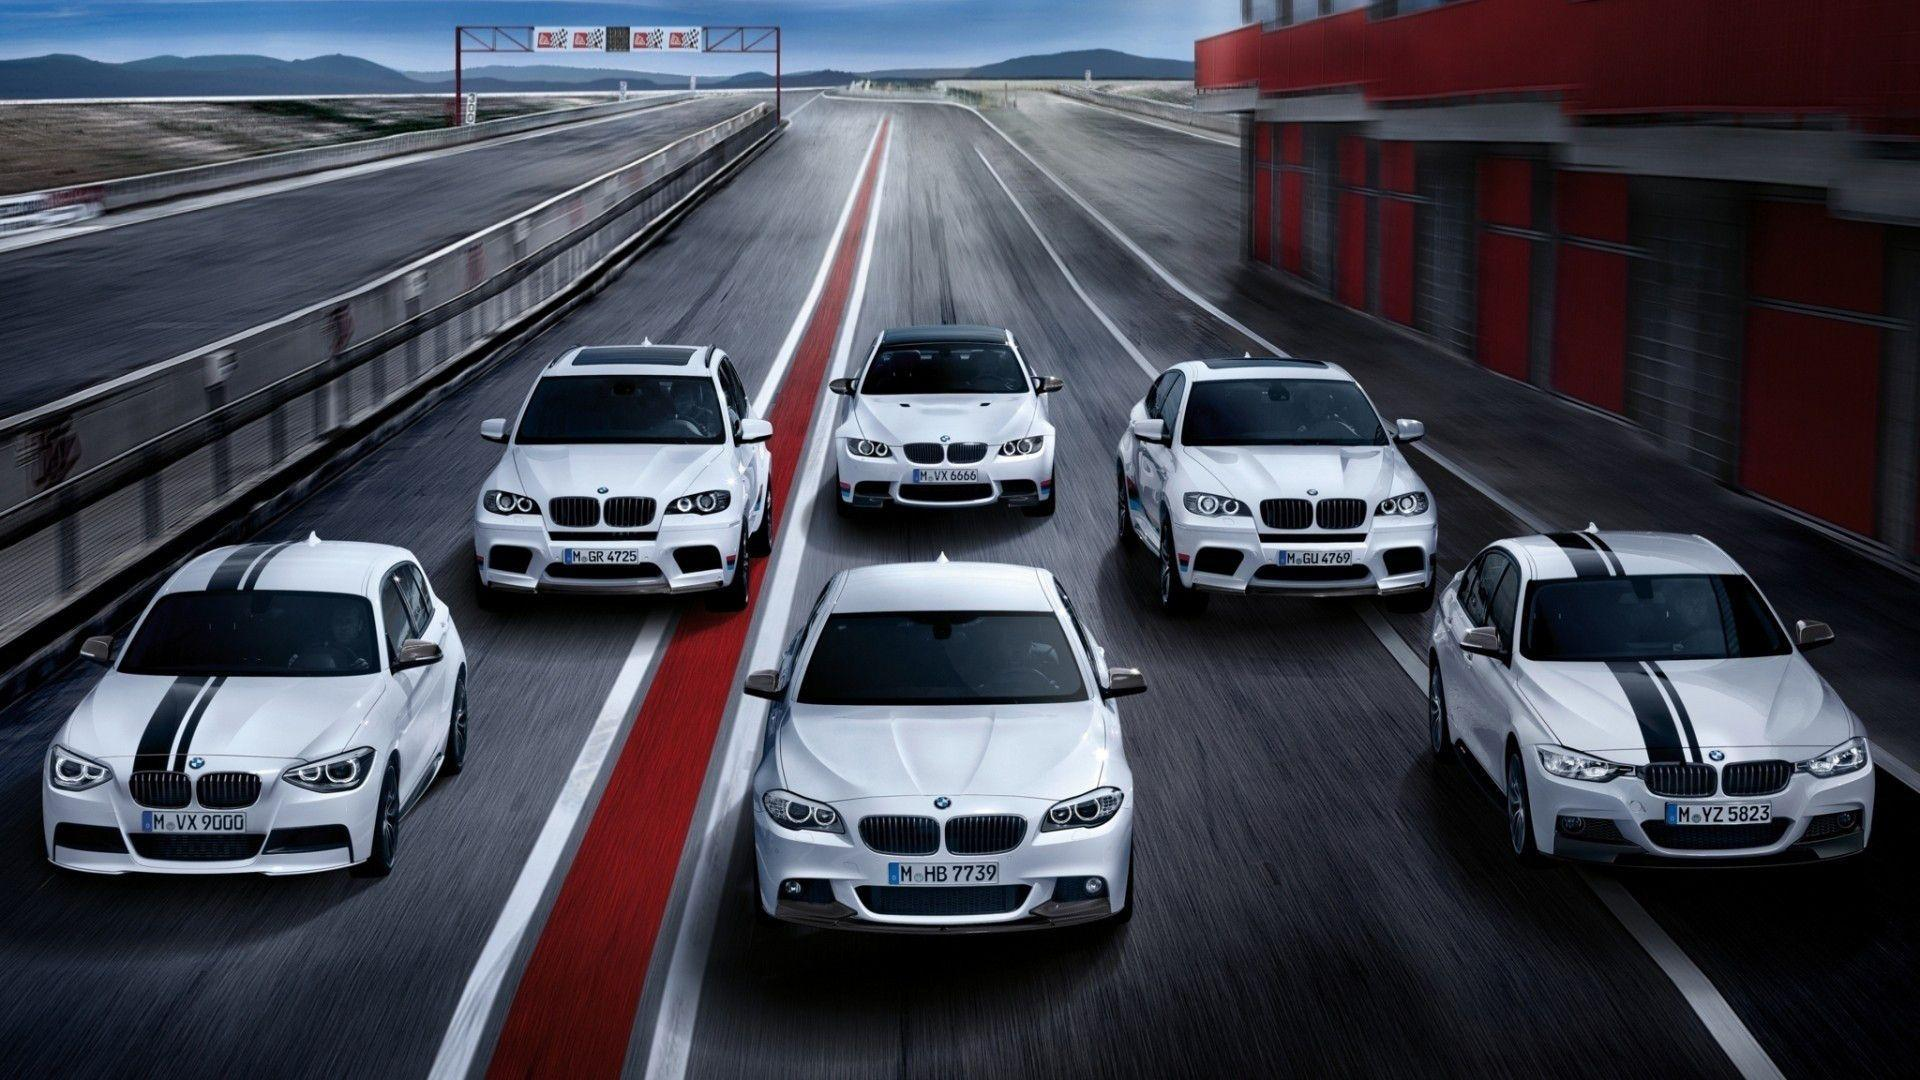 Wallpapers For > Bmw M Wallpapers Hd